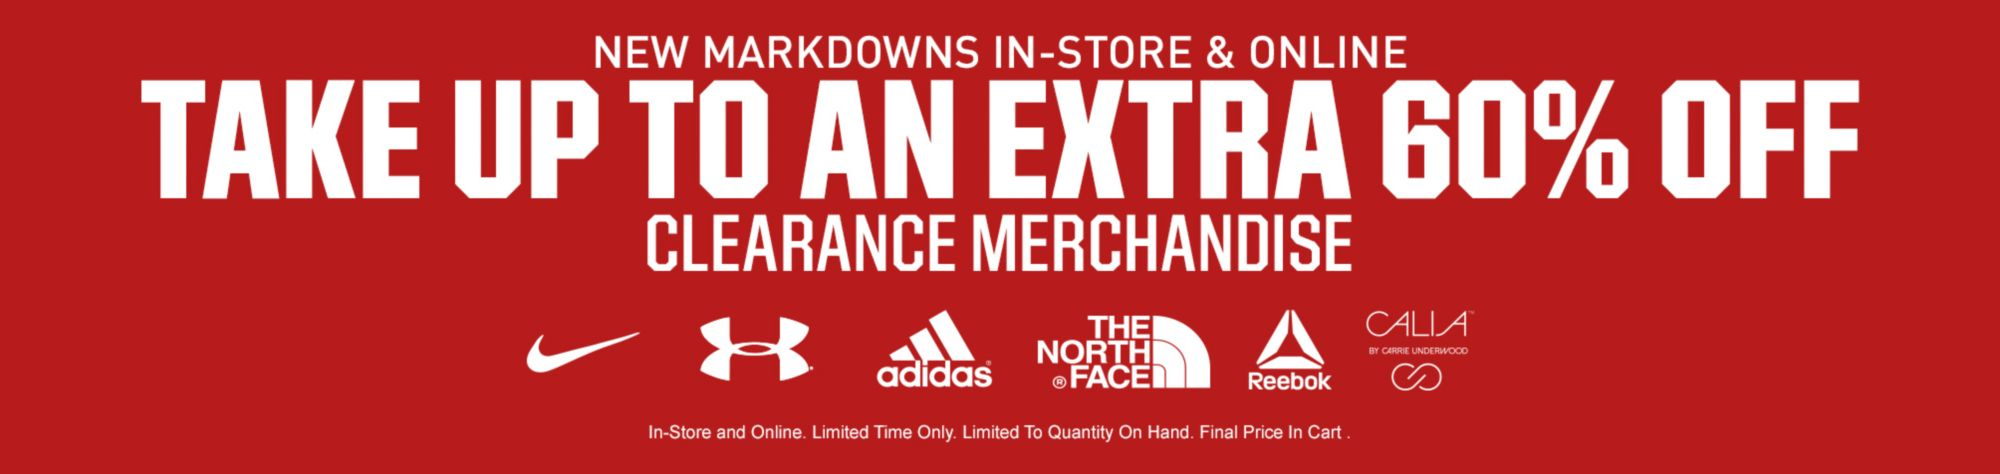 Take up to an extra 60% Off Clearance Merchandise